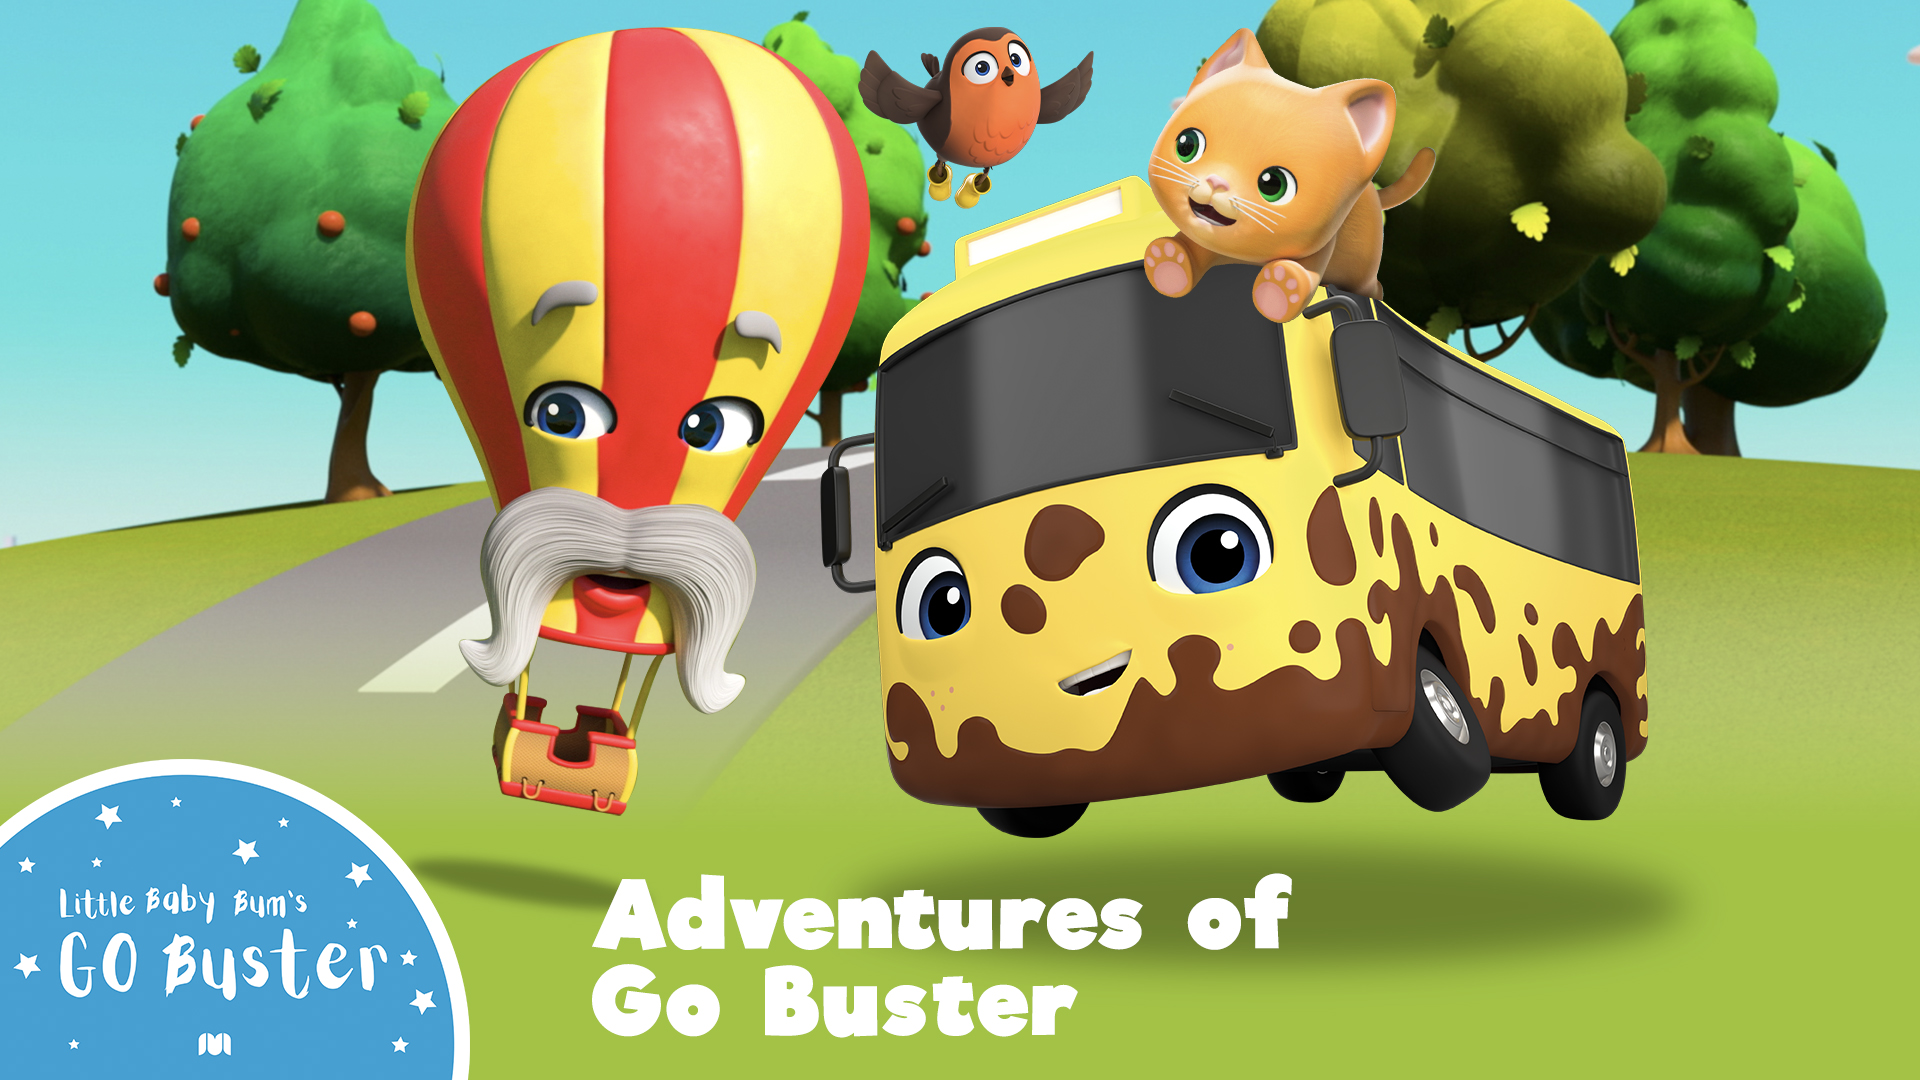 Go Buster - Adventures of Go Buster (Made by Little Baby Bum)